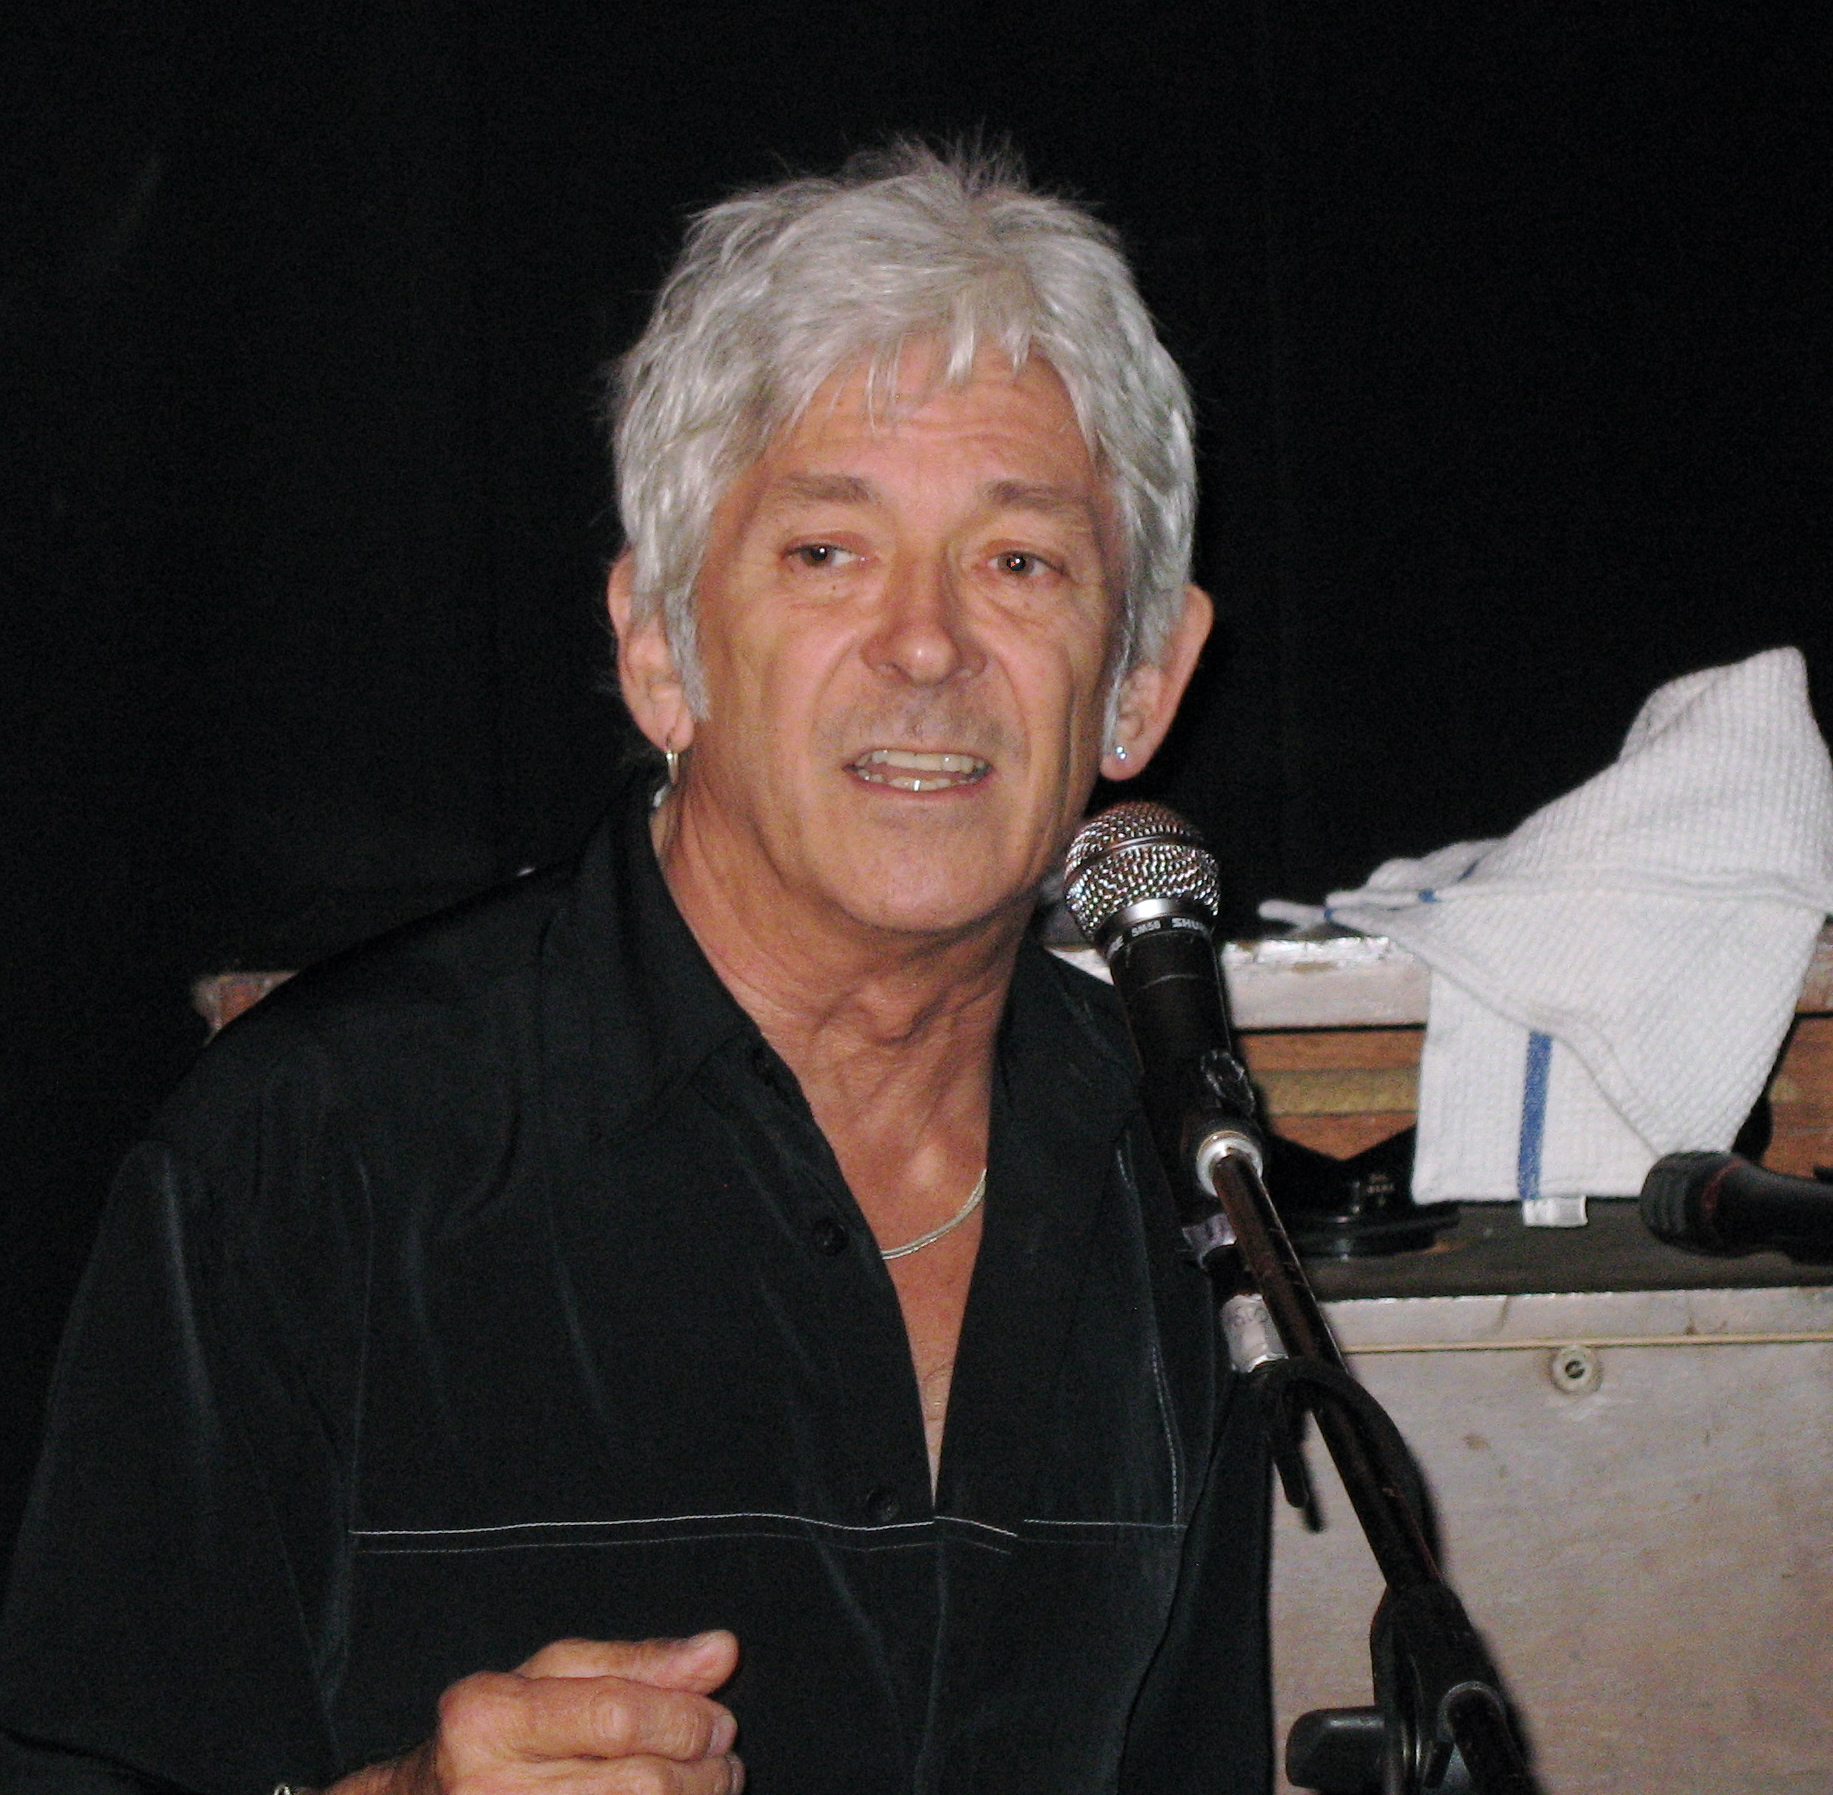 Yes - It's Ian McLagan at the Railway!